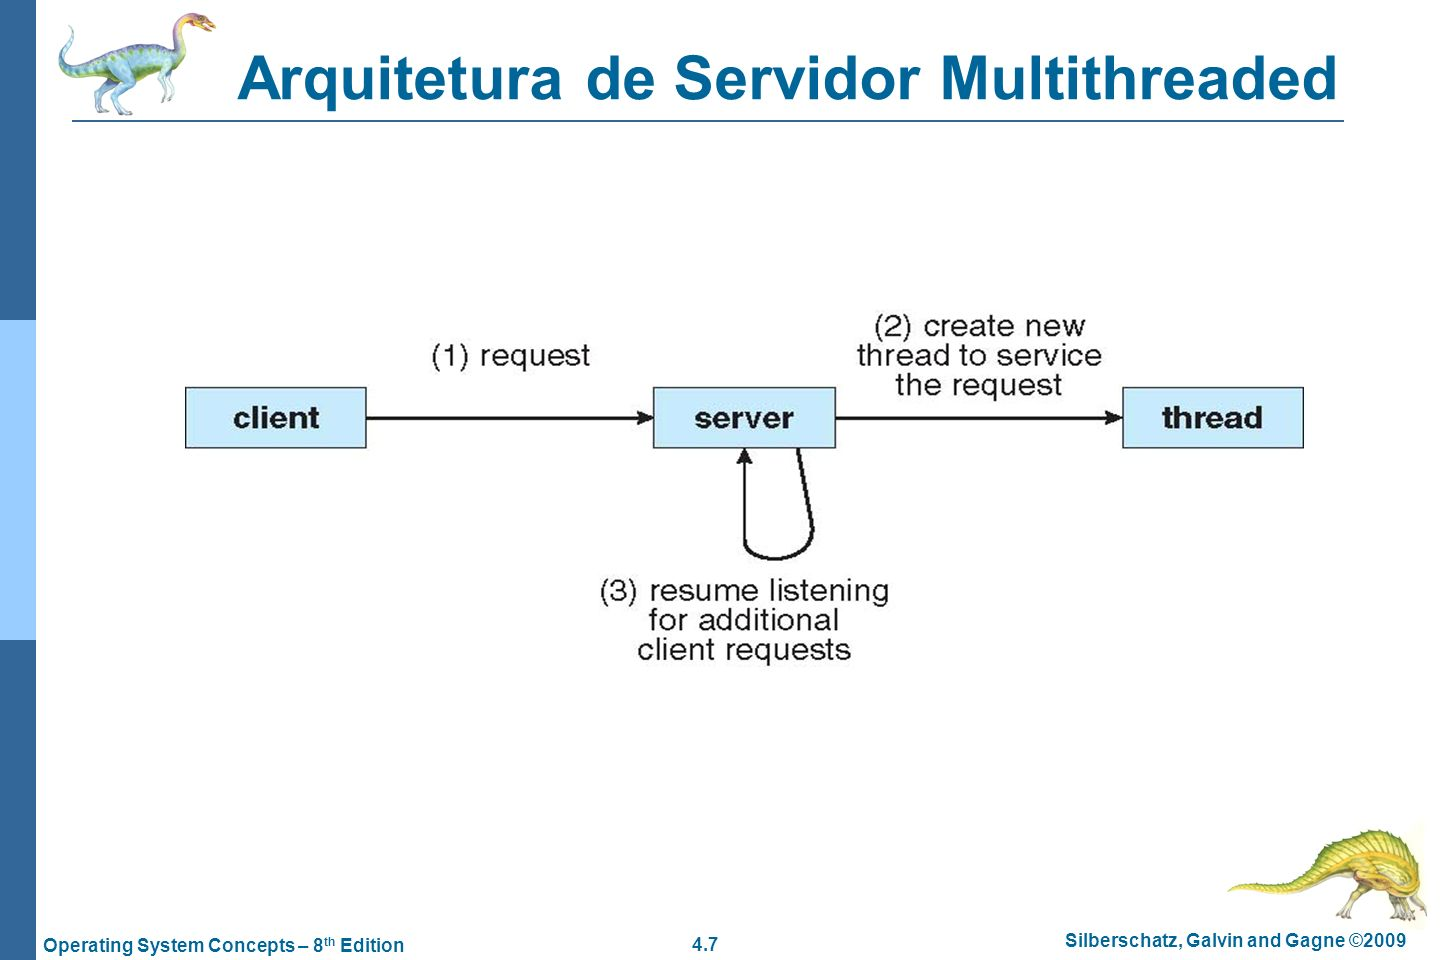 4.7 Silberschatz, Galvin and Gagne ©2009 Operating System Concepts – 8 th Edition Arquitetura de Servidor Multithreaded